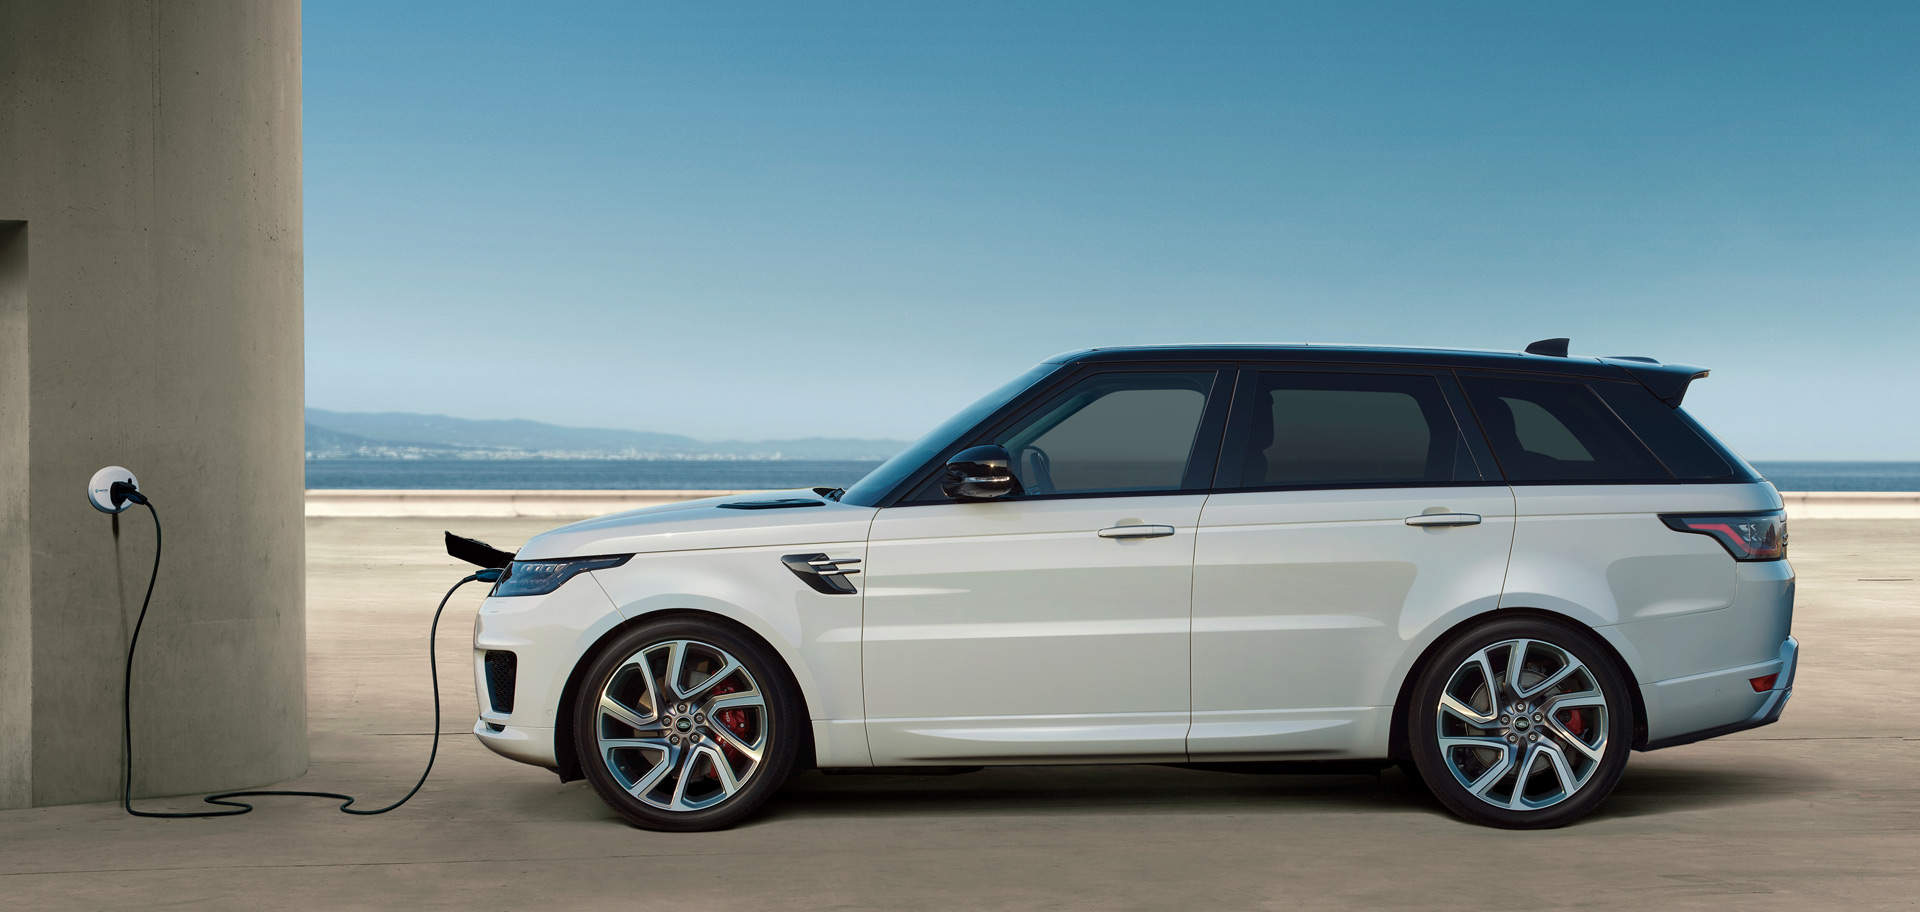 2019 land rover range rover sport p400e plug in hybrid. Black Bedroom Furniture Sets. Home Design Ideas